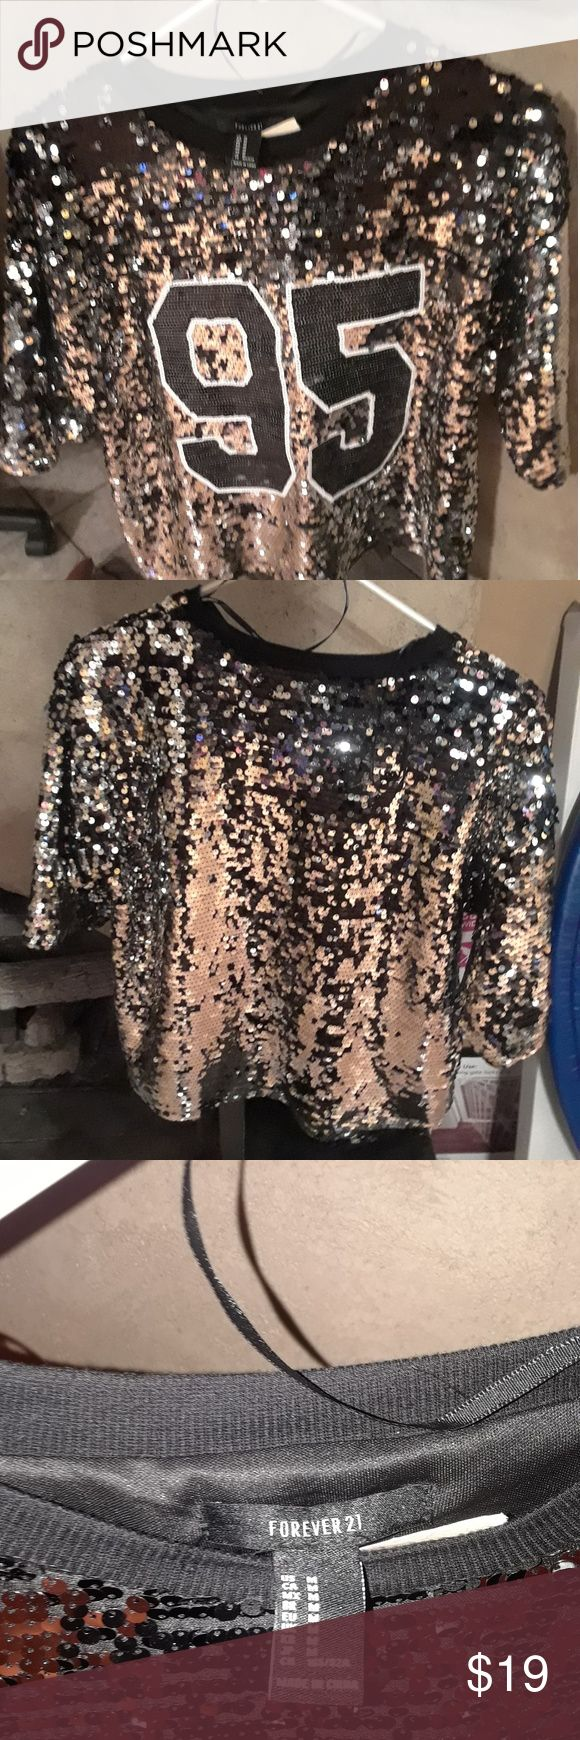 Forever 21 Silver sequin evening blouse with the number 95 in front. Brand new, never worn. Forever 21 Tops Blouses